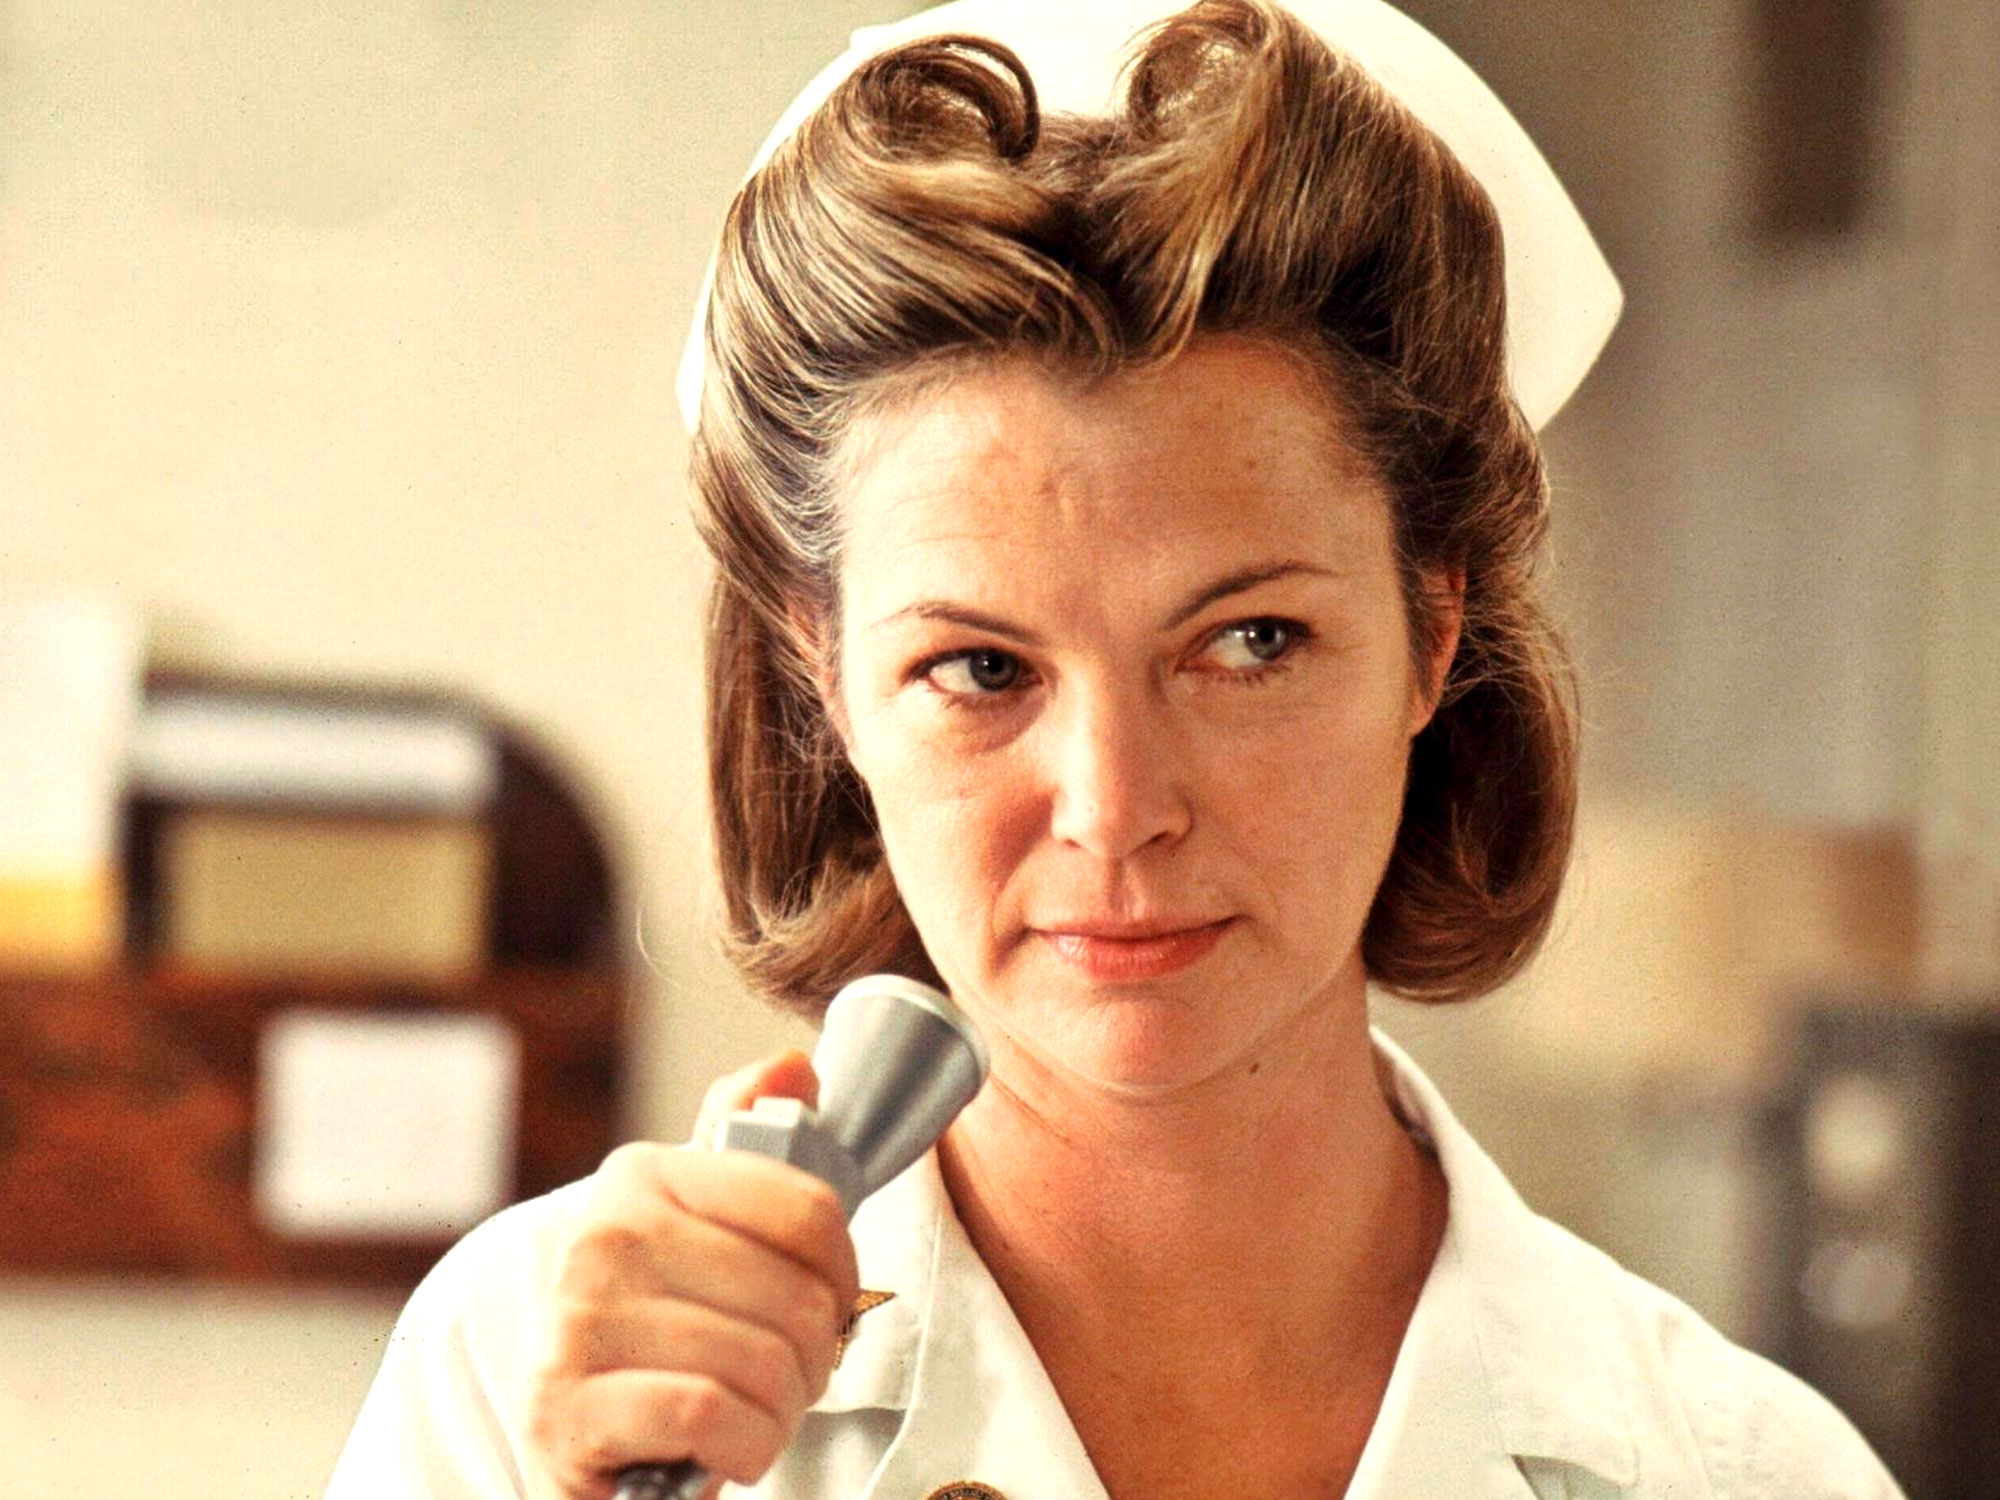 Nurse Ratched is the perfect movie villain – and the perfect stereotype